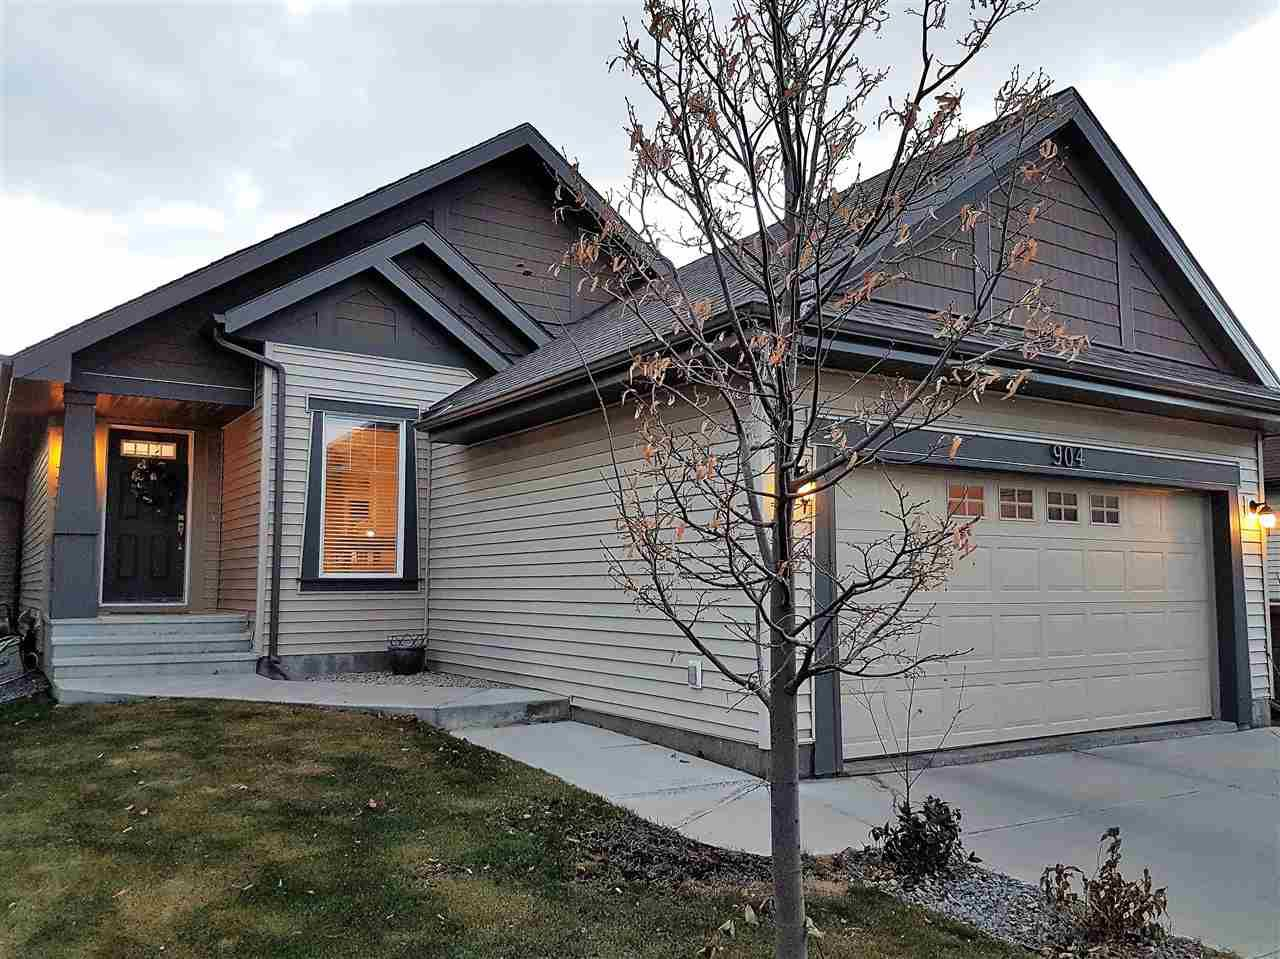 Main Photo: 904 CHAHLEY Crescent in Edmonton: Zone 20 House for sale : MLS®# E4129266